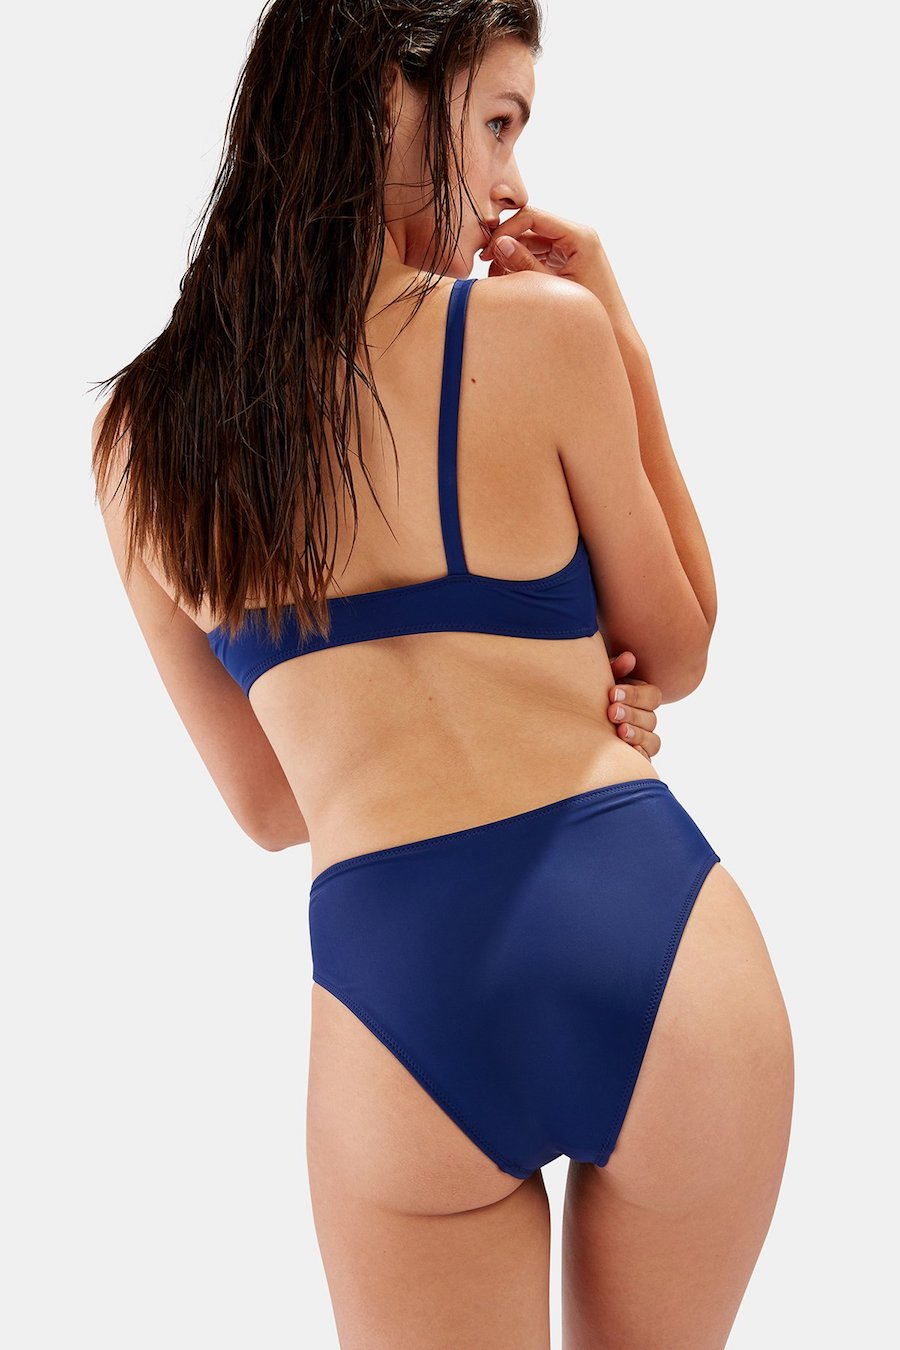 368317a46d9bd2 ... the spotlight—fashion fads are forever fickle—you can feel confident  that the high waisted bikinis in your collection will always be classy